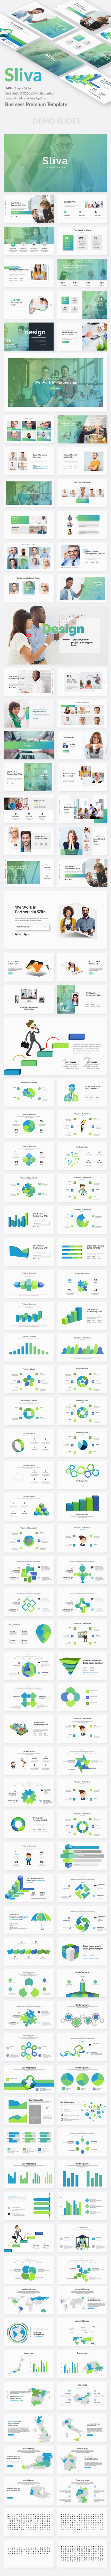 Sliva Business Powerpoint Template - Business PowerPoint Templates